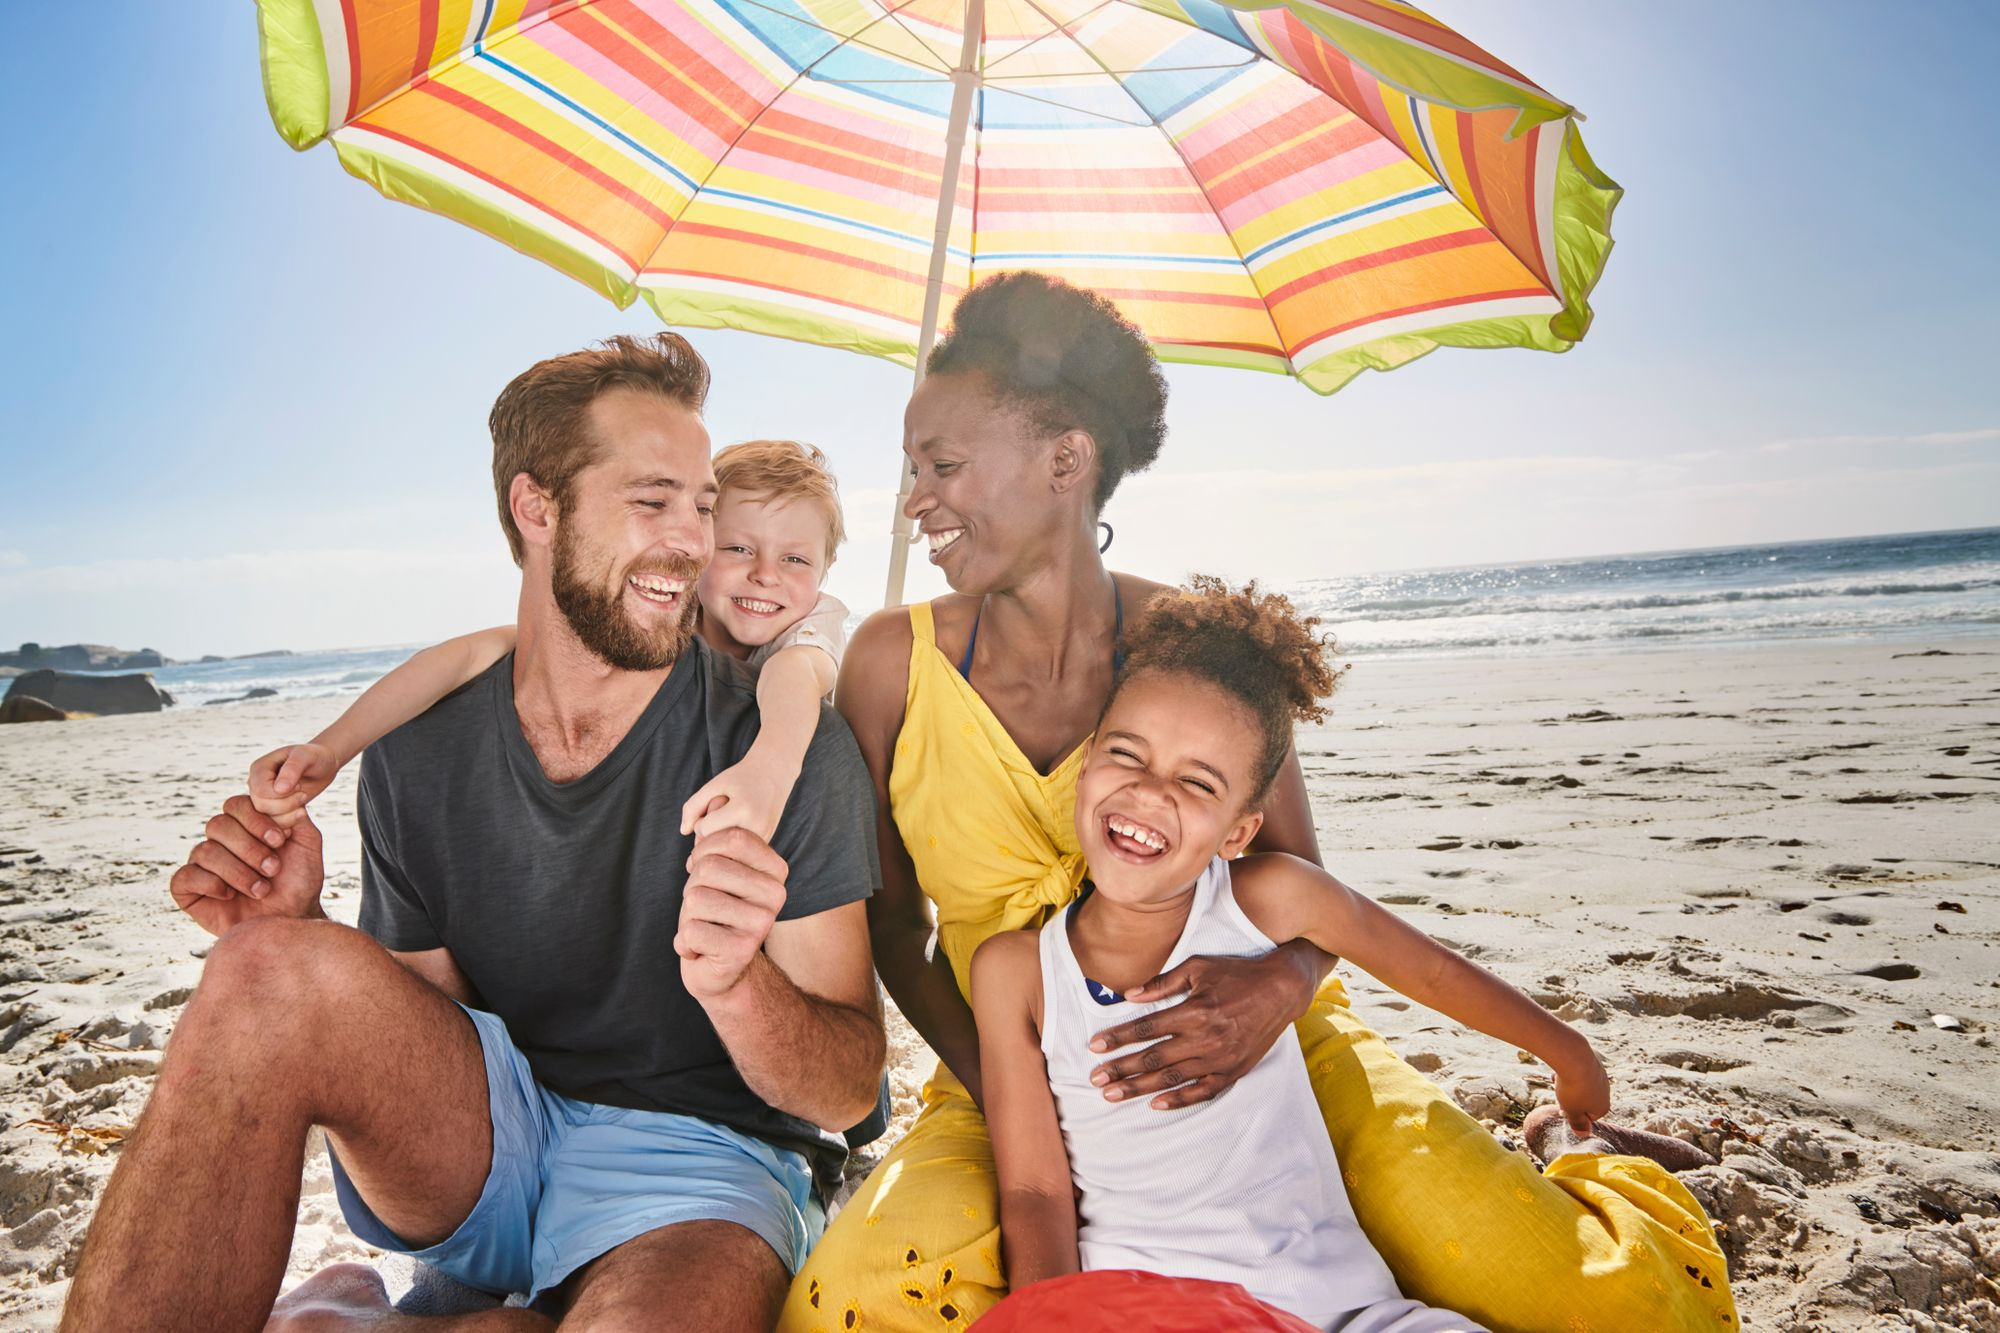 Best Delaware beaches to visit for summer vacation 2021